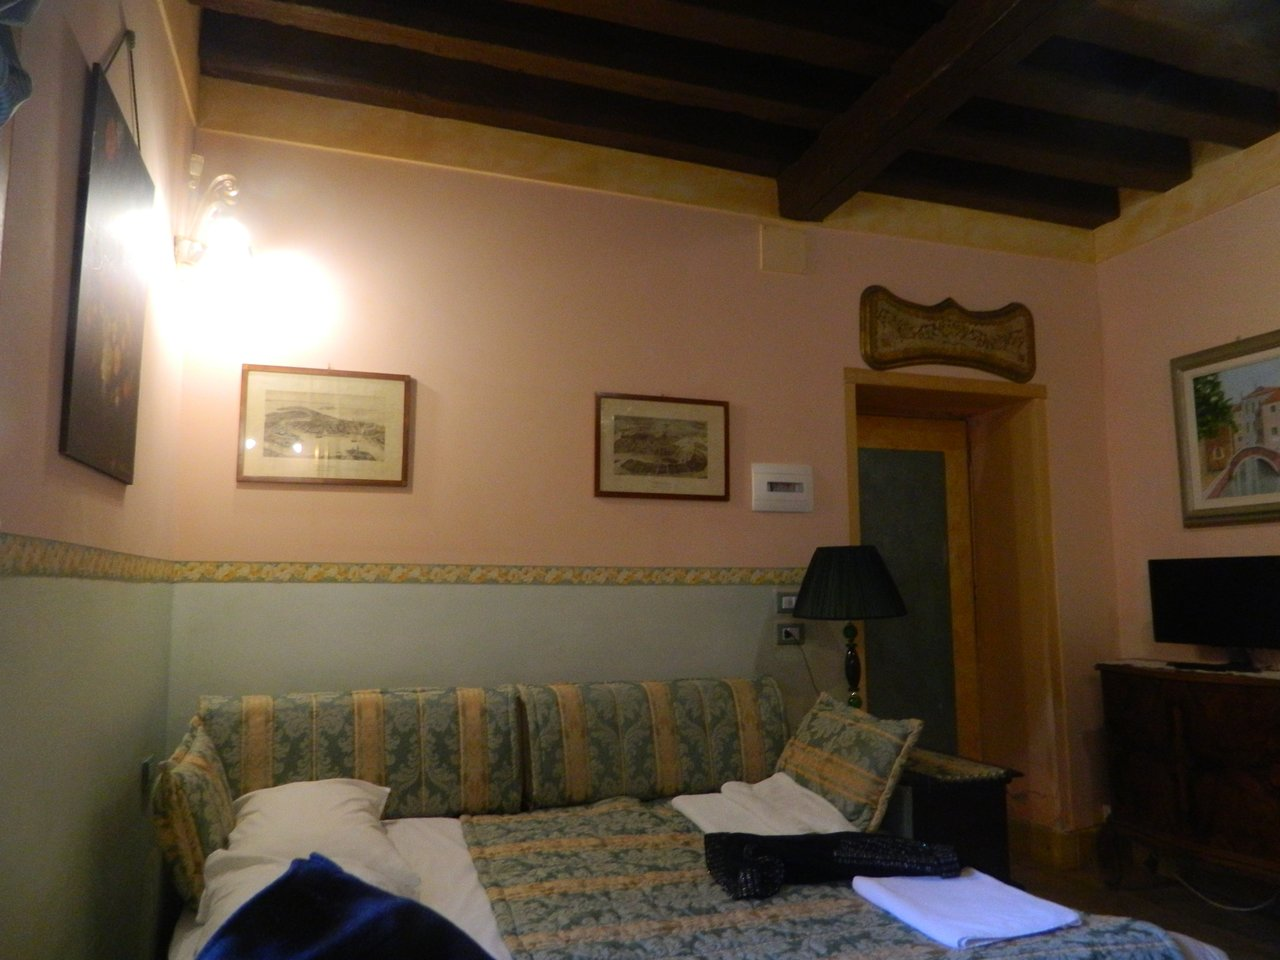 SWEET HOME - Updated 2019 Prices, B&B Reviews, and Photos (Treviso ...